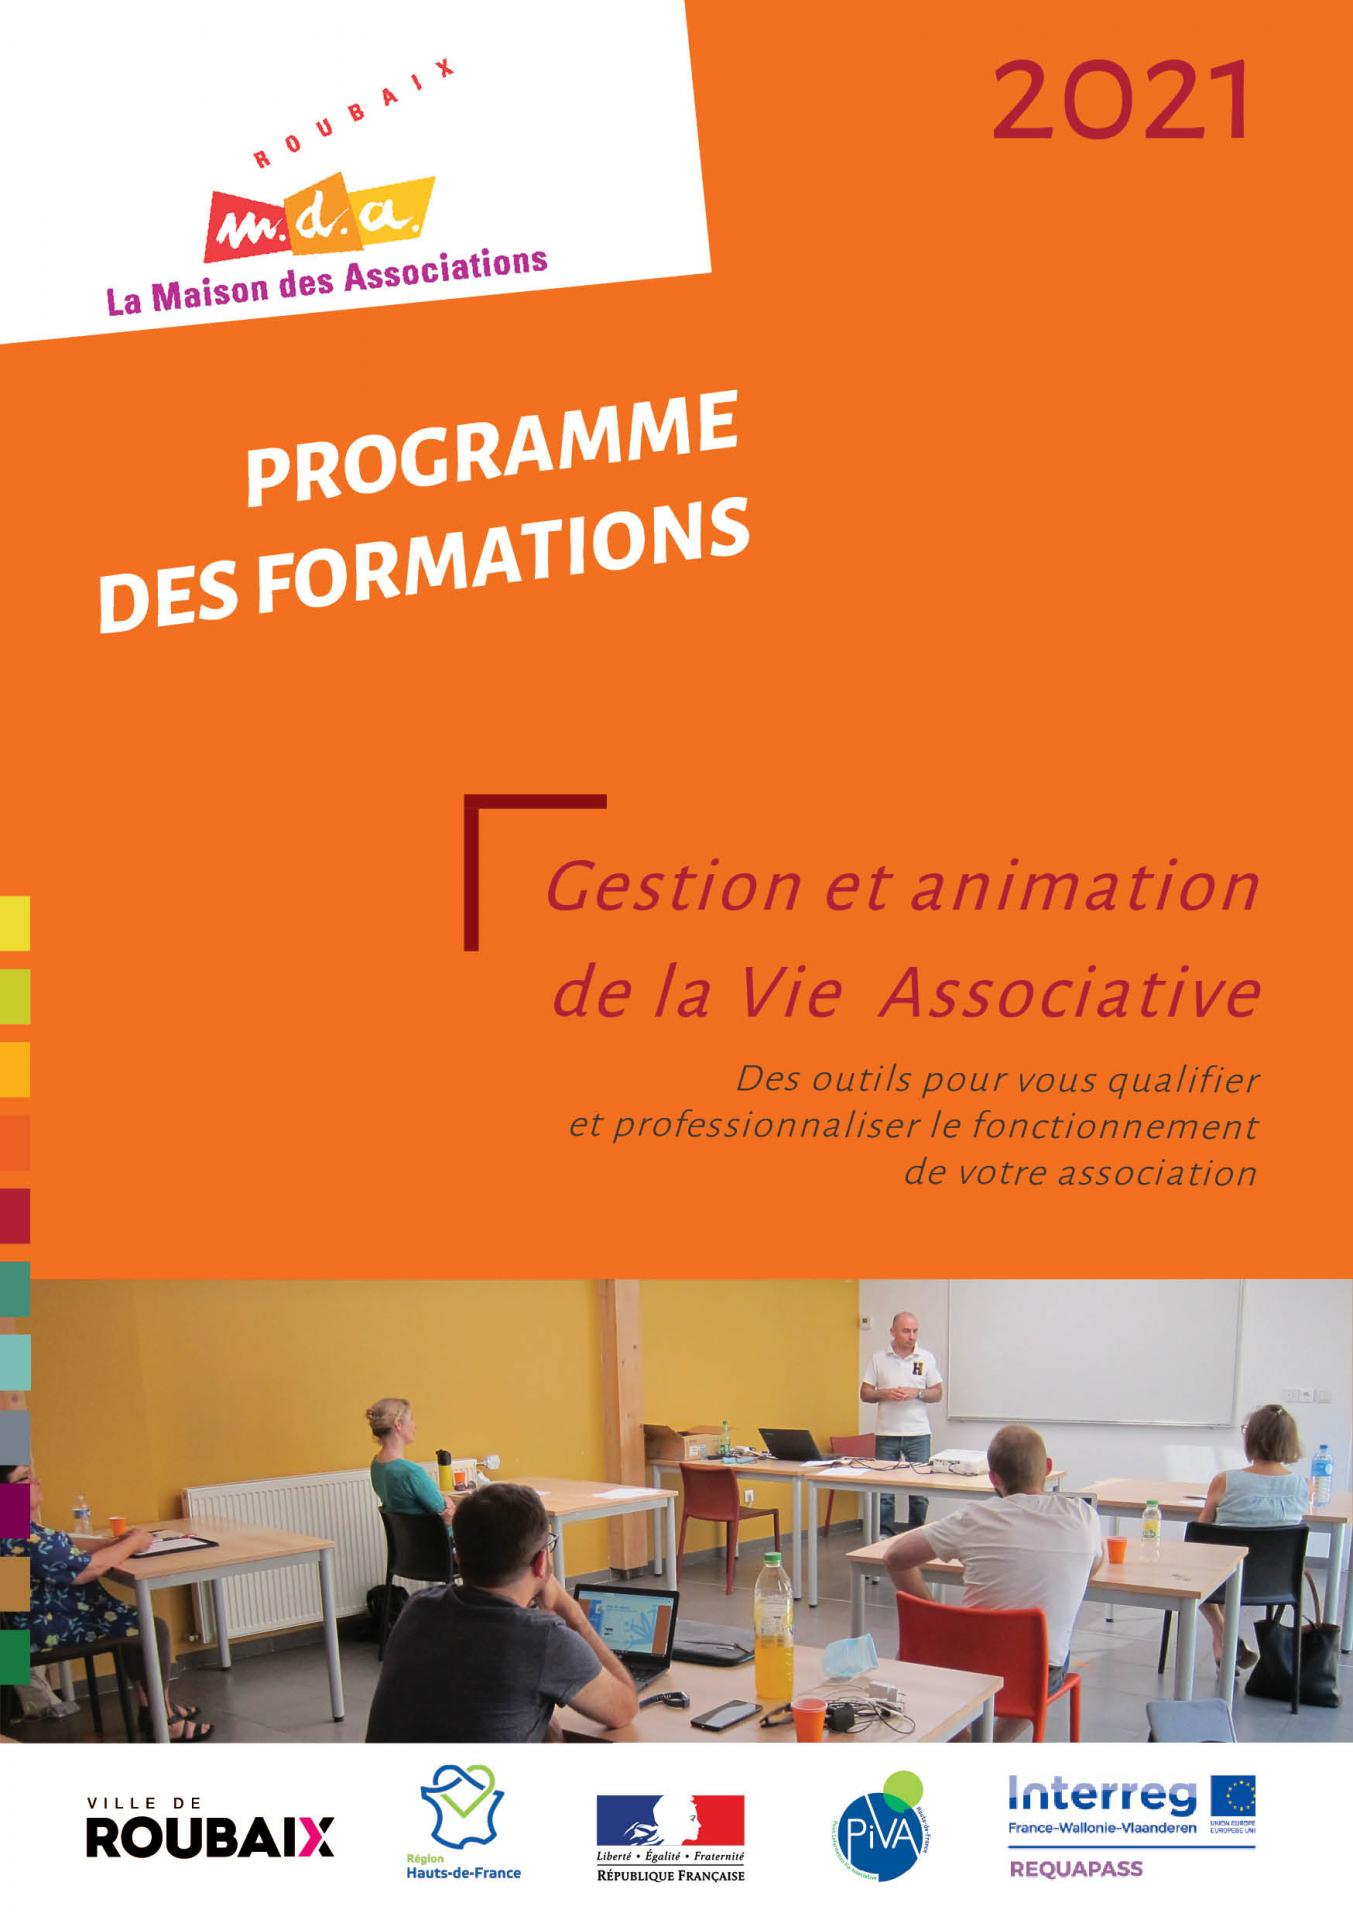 Programme de formations mda 2020 couv